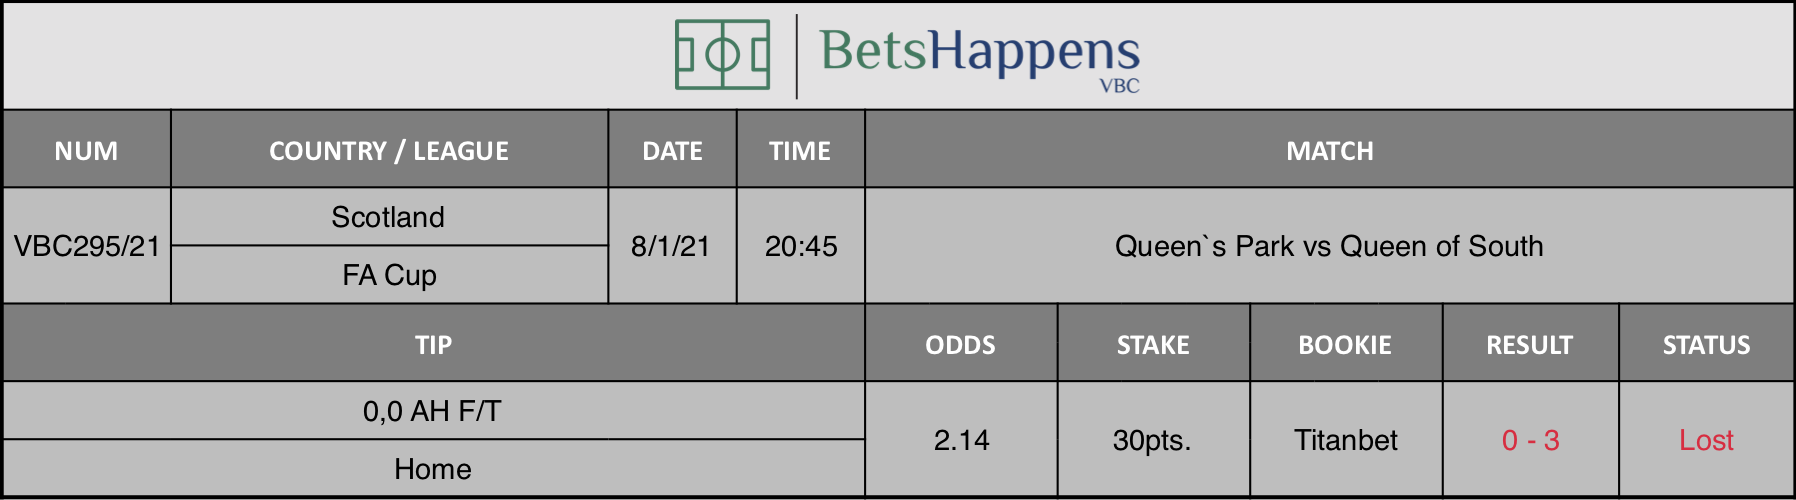 Results of our tip for the Queen`s Park vs Queen of South  match where 0,0 AH F/T  Home is recommended.